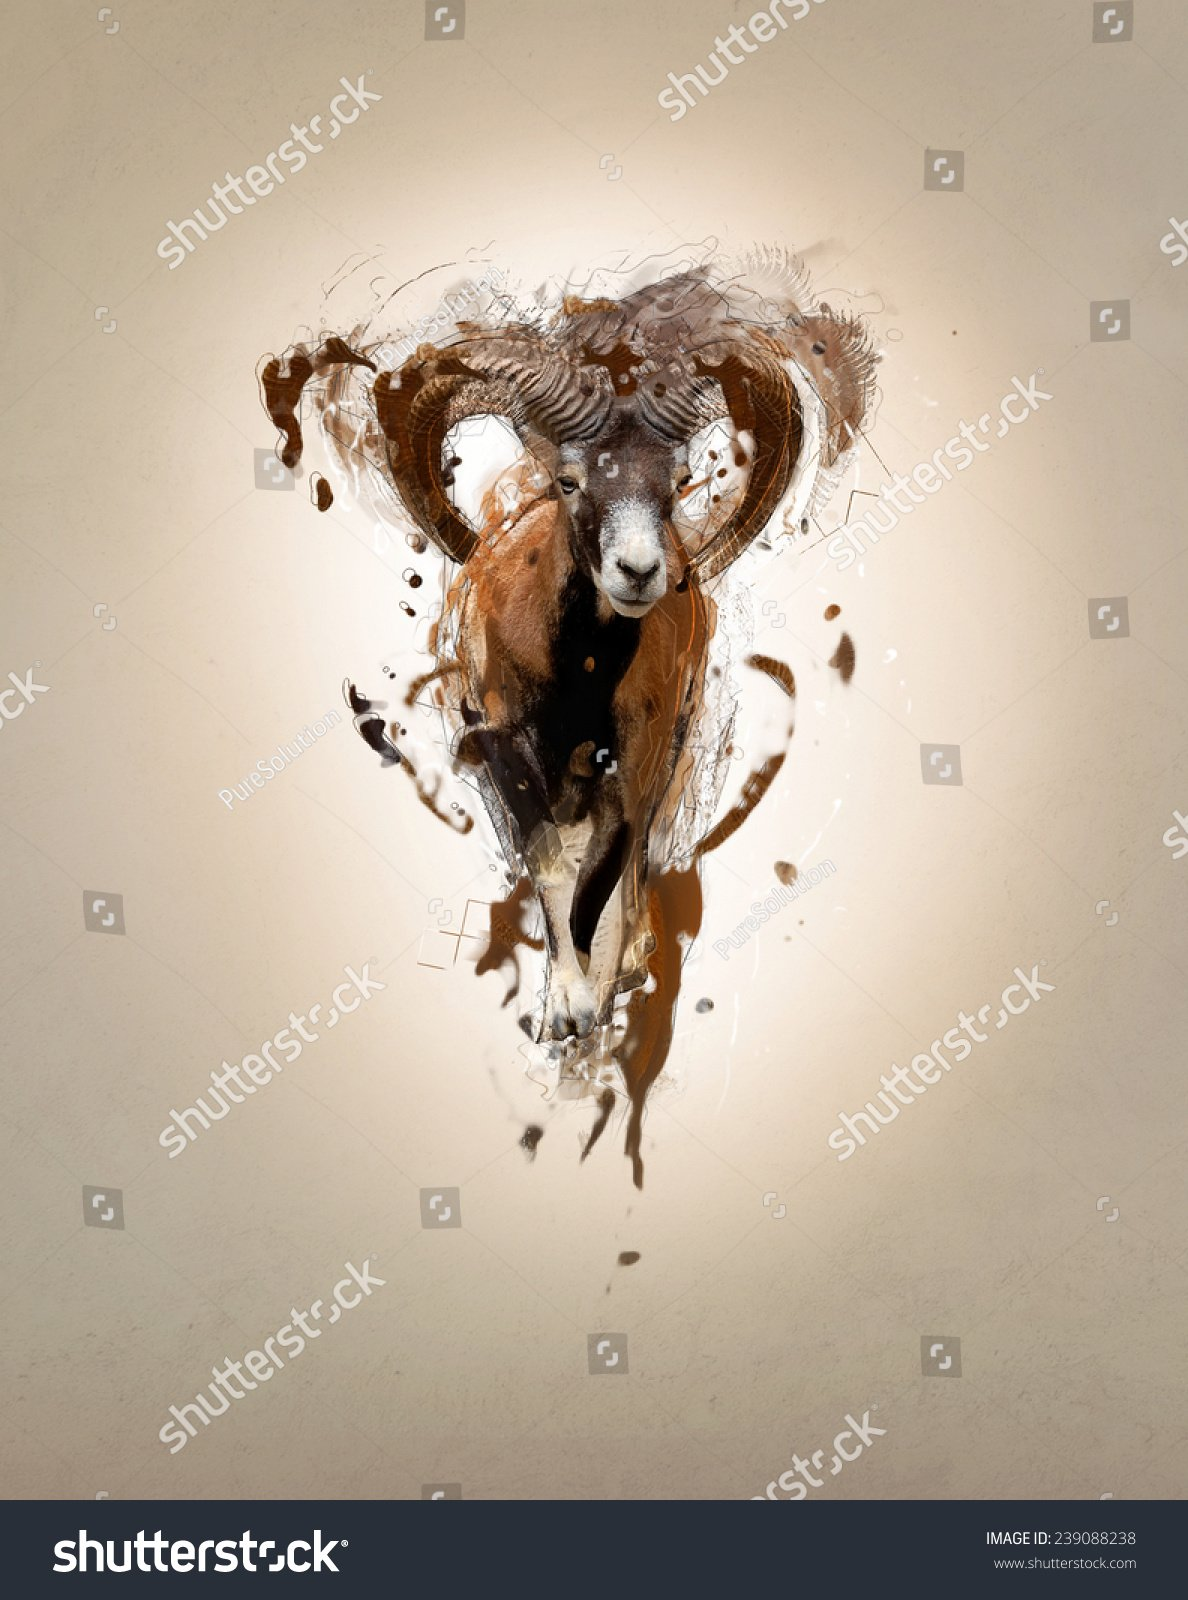 Mouflon Abstract Animal Concept Can Be Stock Illustration 239088238 1188x1600